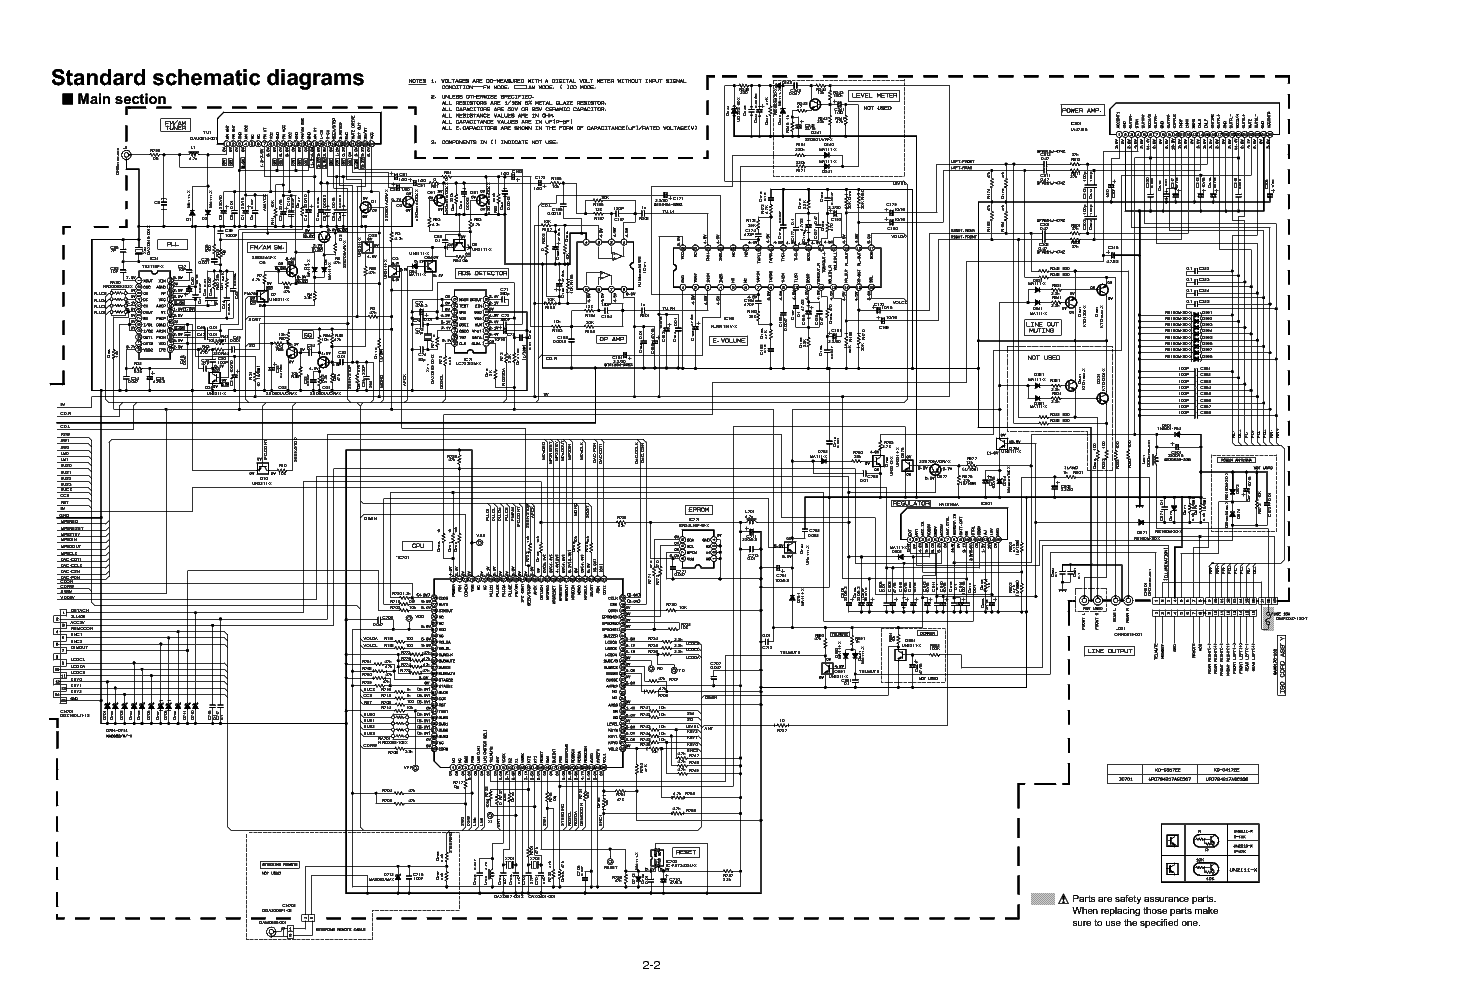 jvc_kd g317_sch.pdf_1 jvc kd g320 wiring diagram jvc kd 320 manual, jvc kd r320 wiring jvc kd g340 wiring diagram at gsmportal.co